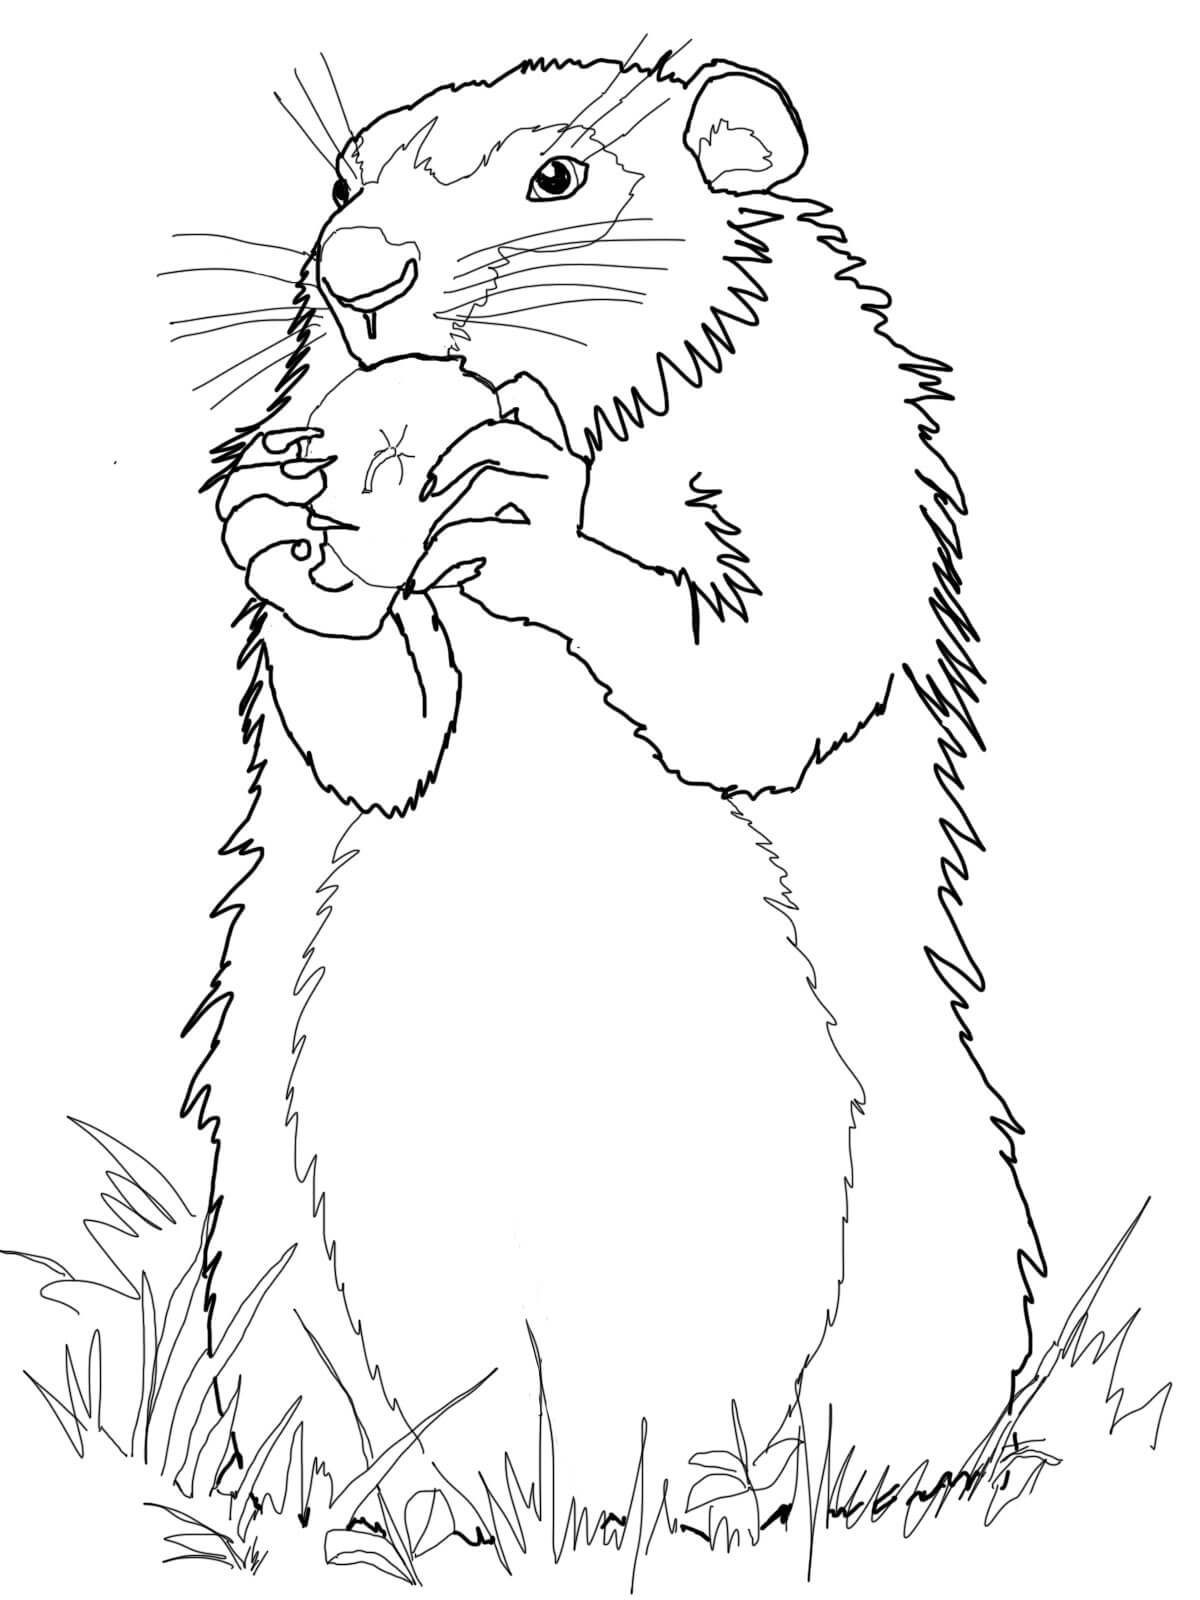 groundhog pictures to color groundhog coloring page animals groundhog to pictures color